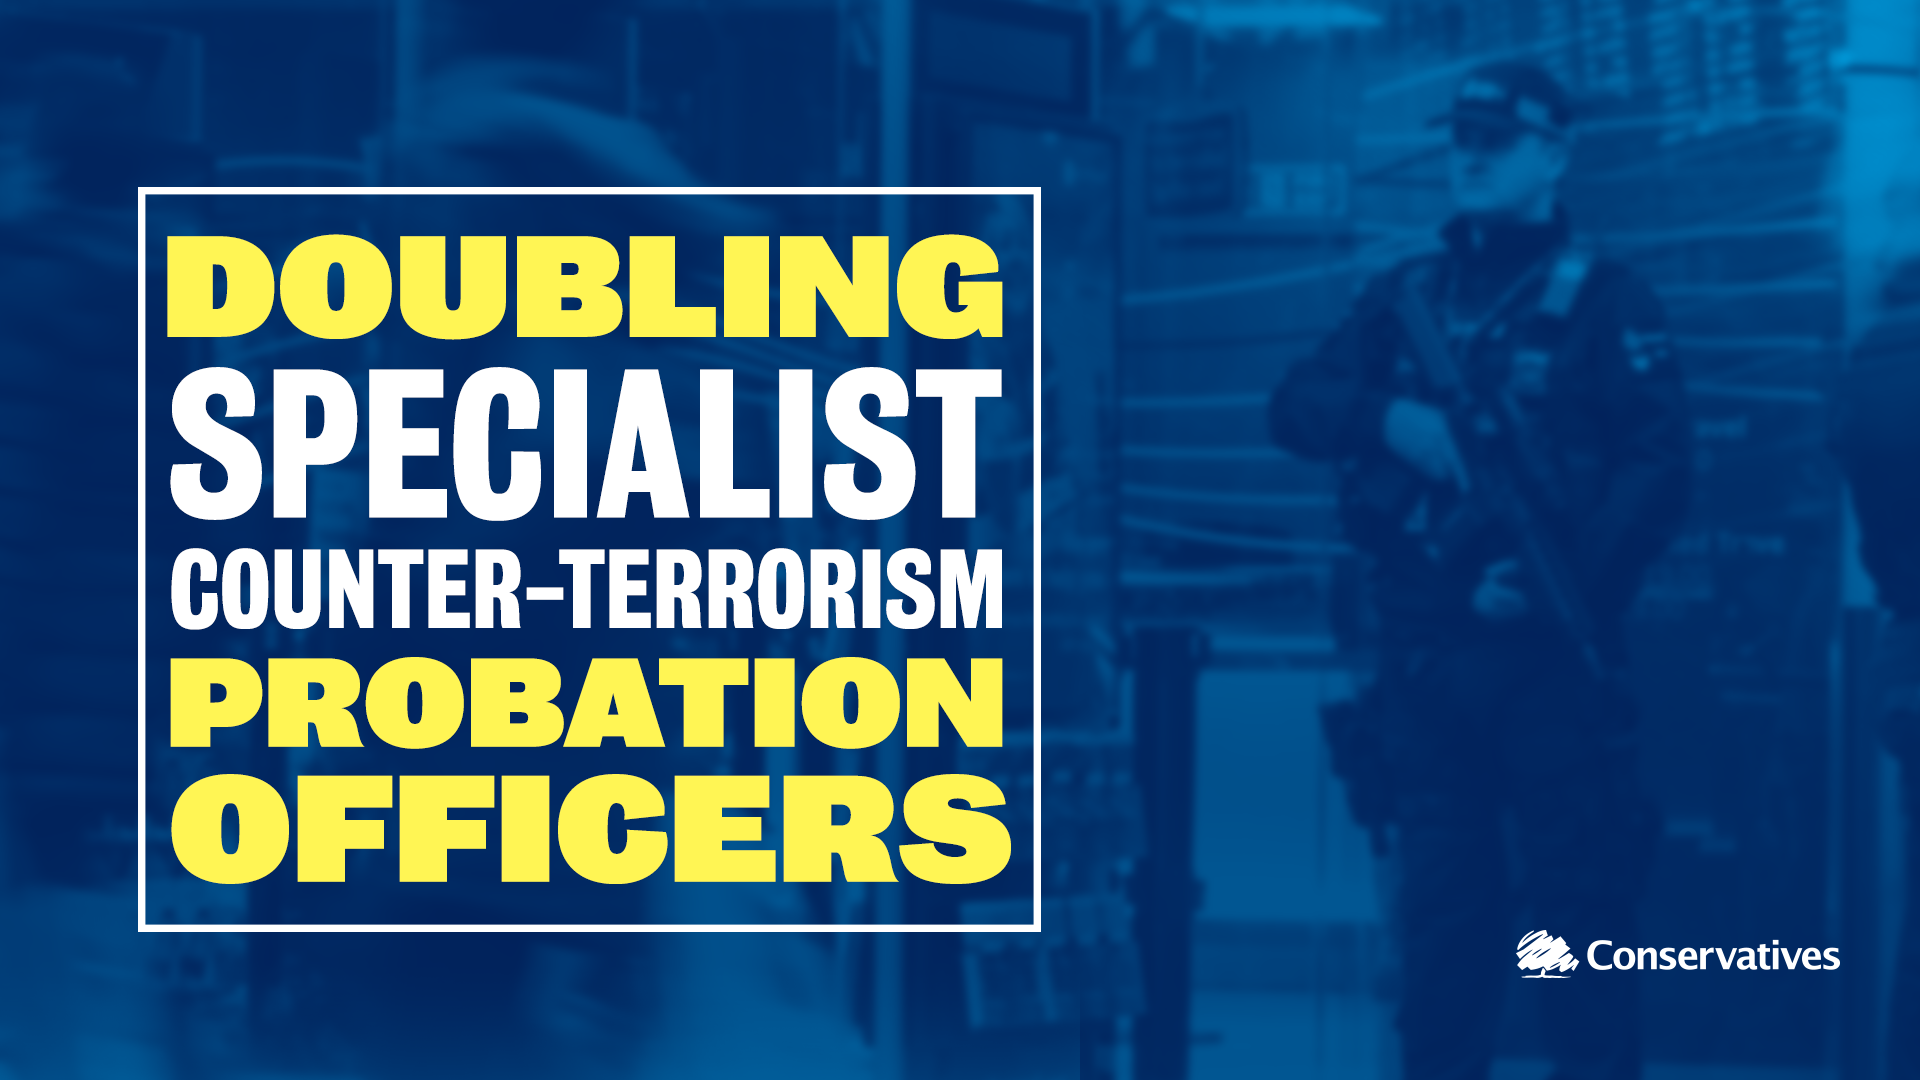 Doubing specialist counter-terrorism probation officers